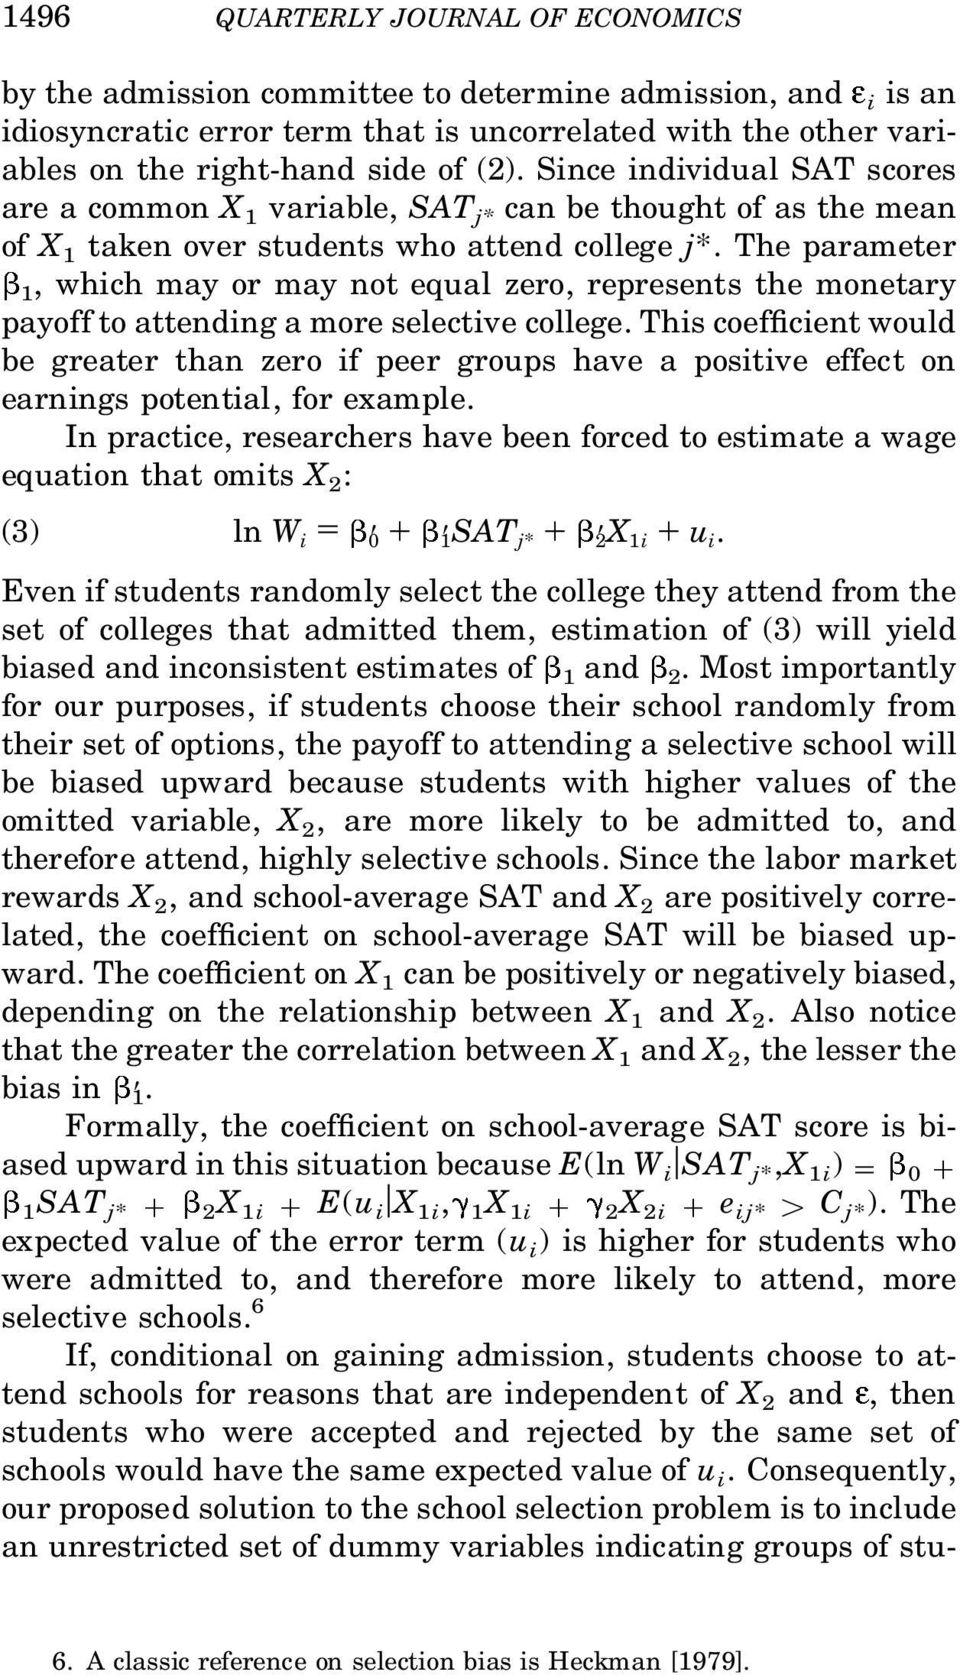 The parameter 1, which may or may not equal zero, represents the monetary payoff to attending a more selective college.